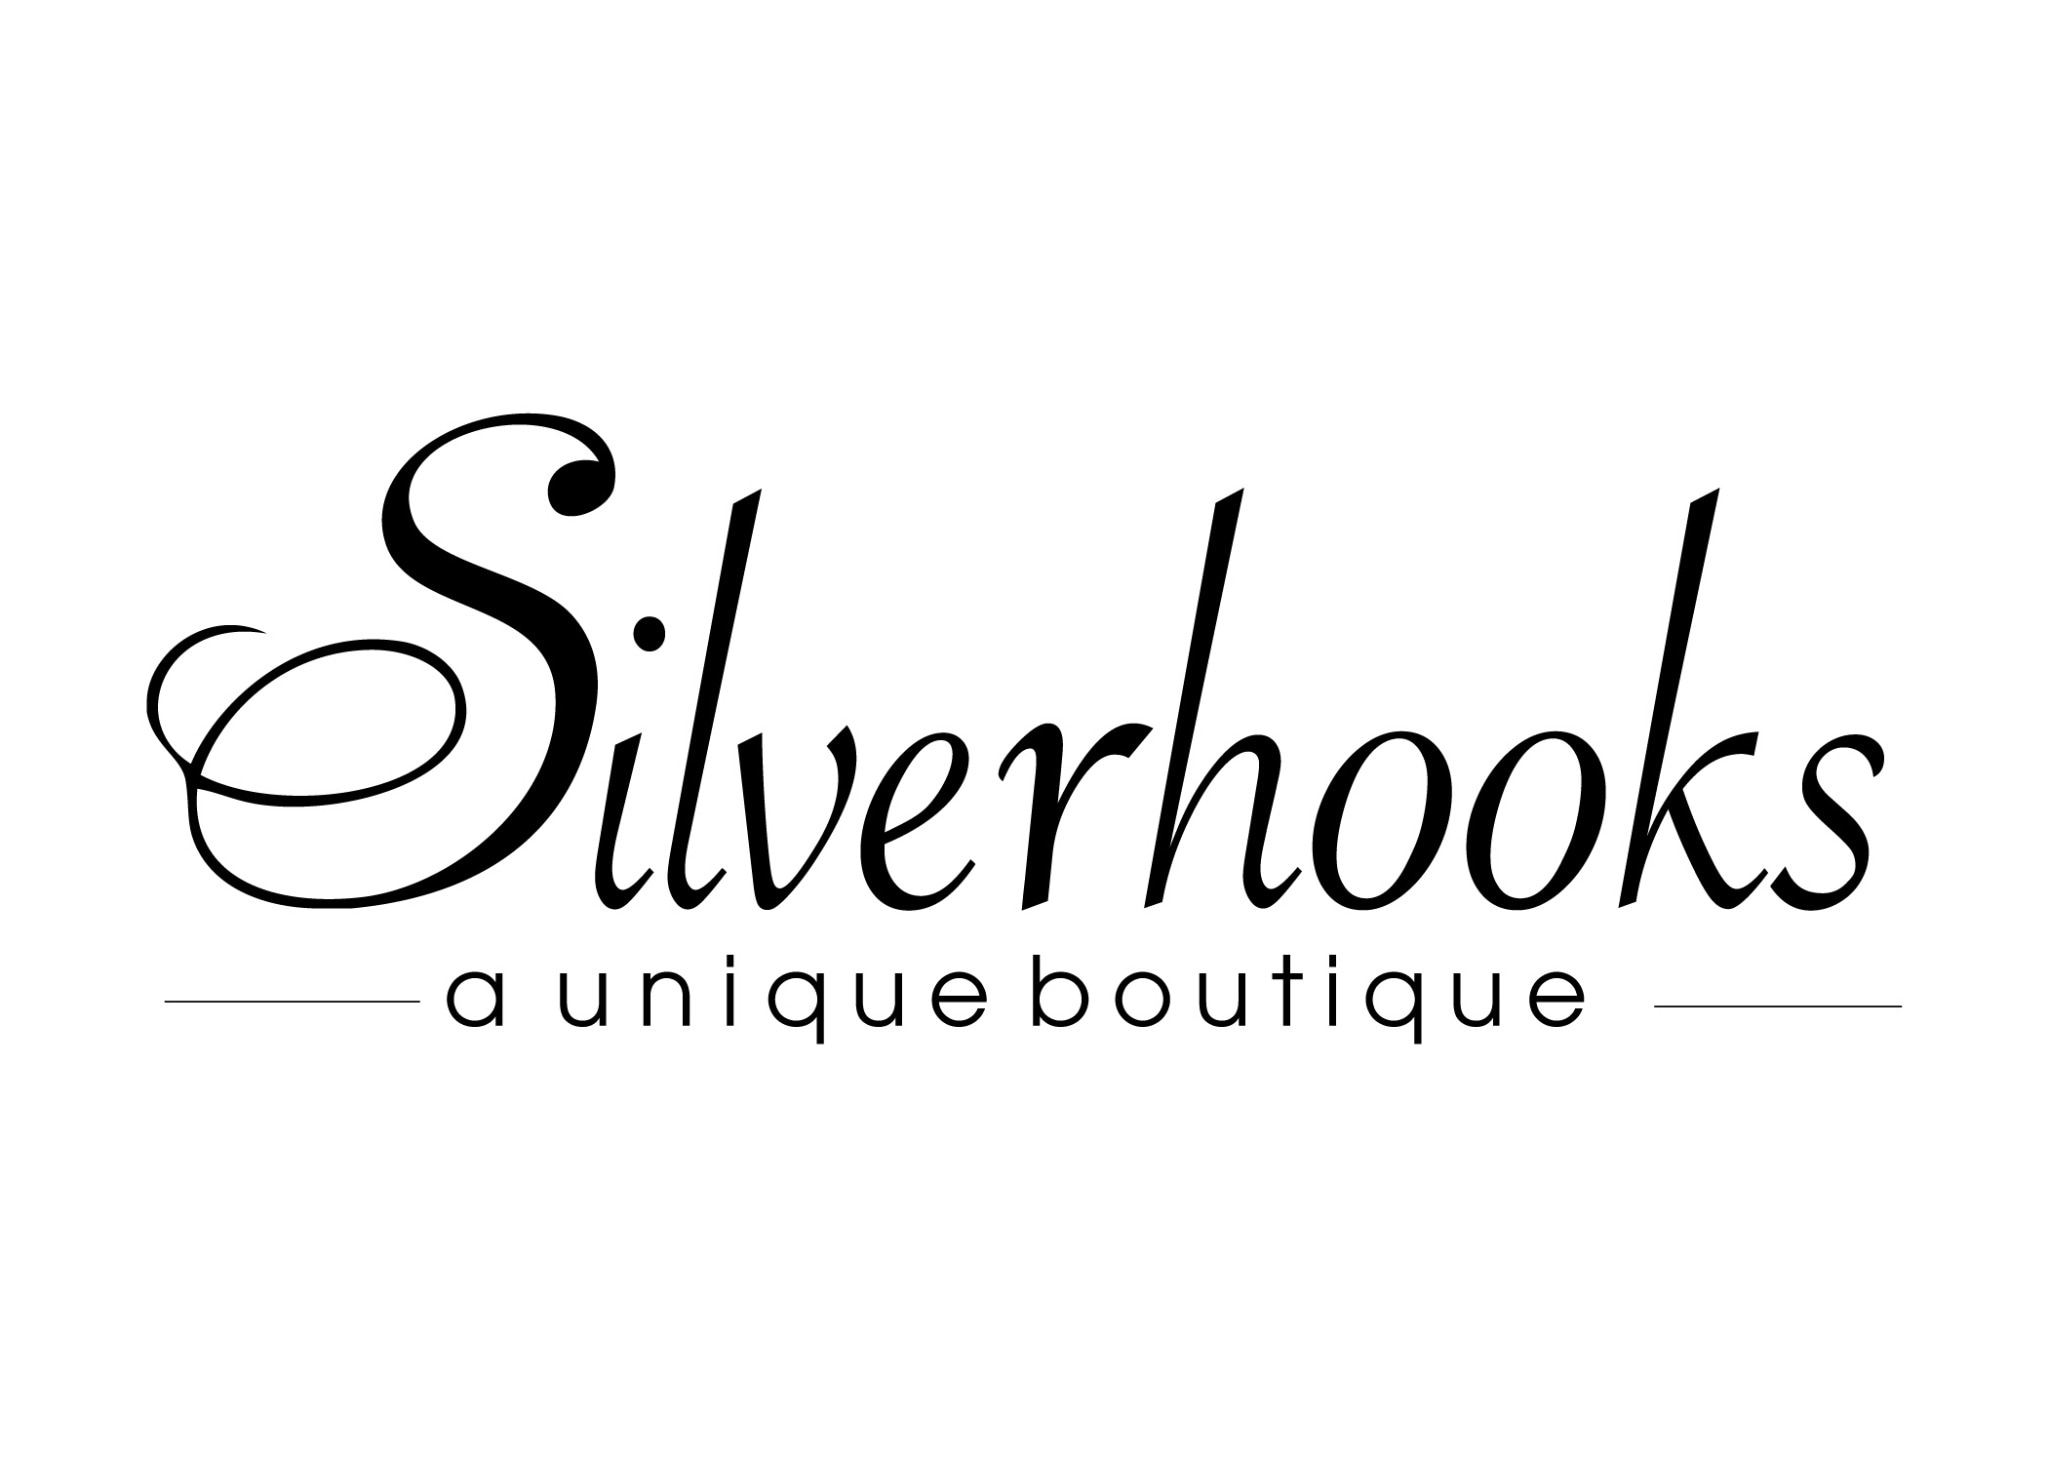 Silverhooks promo codes